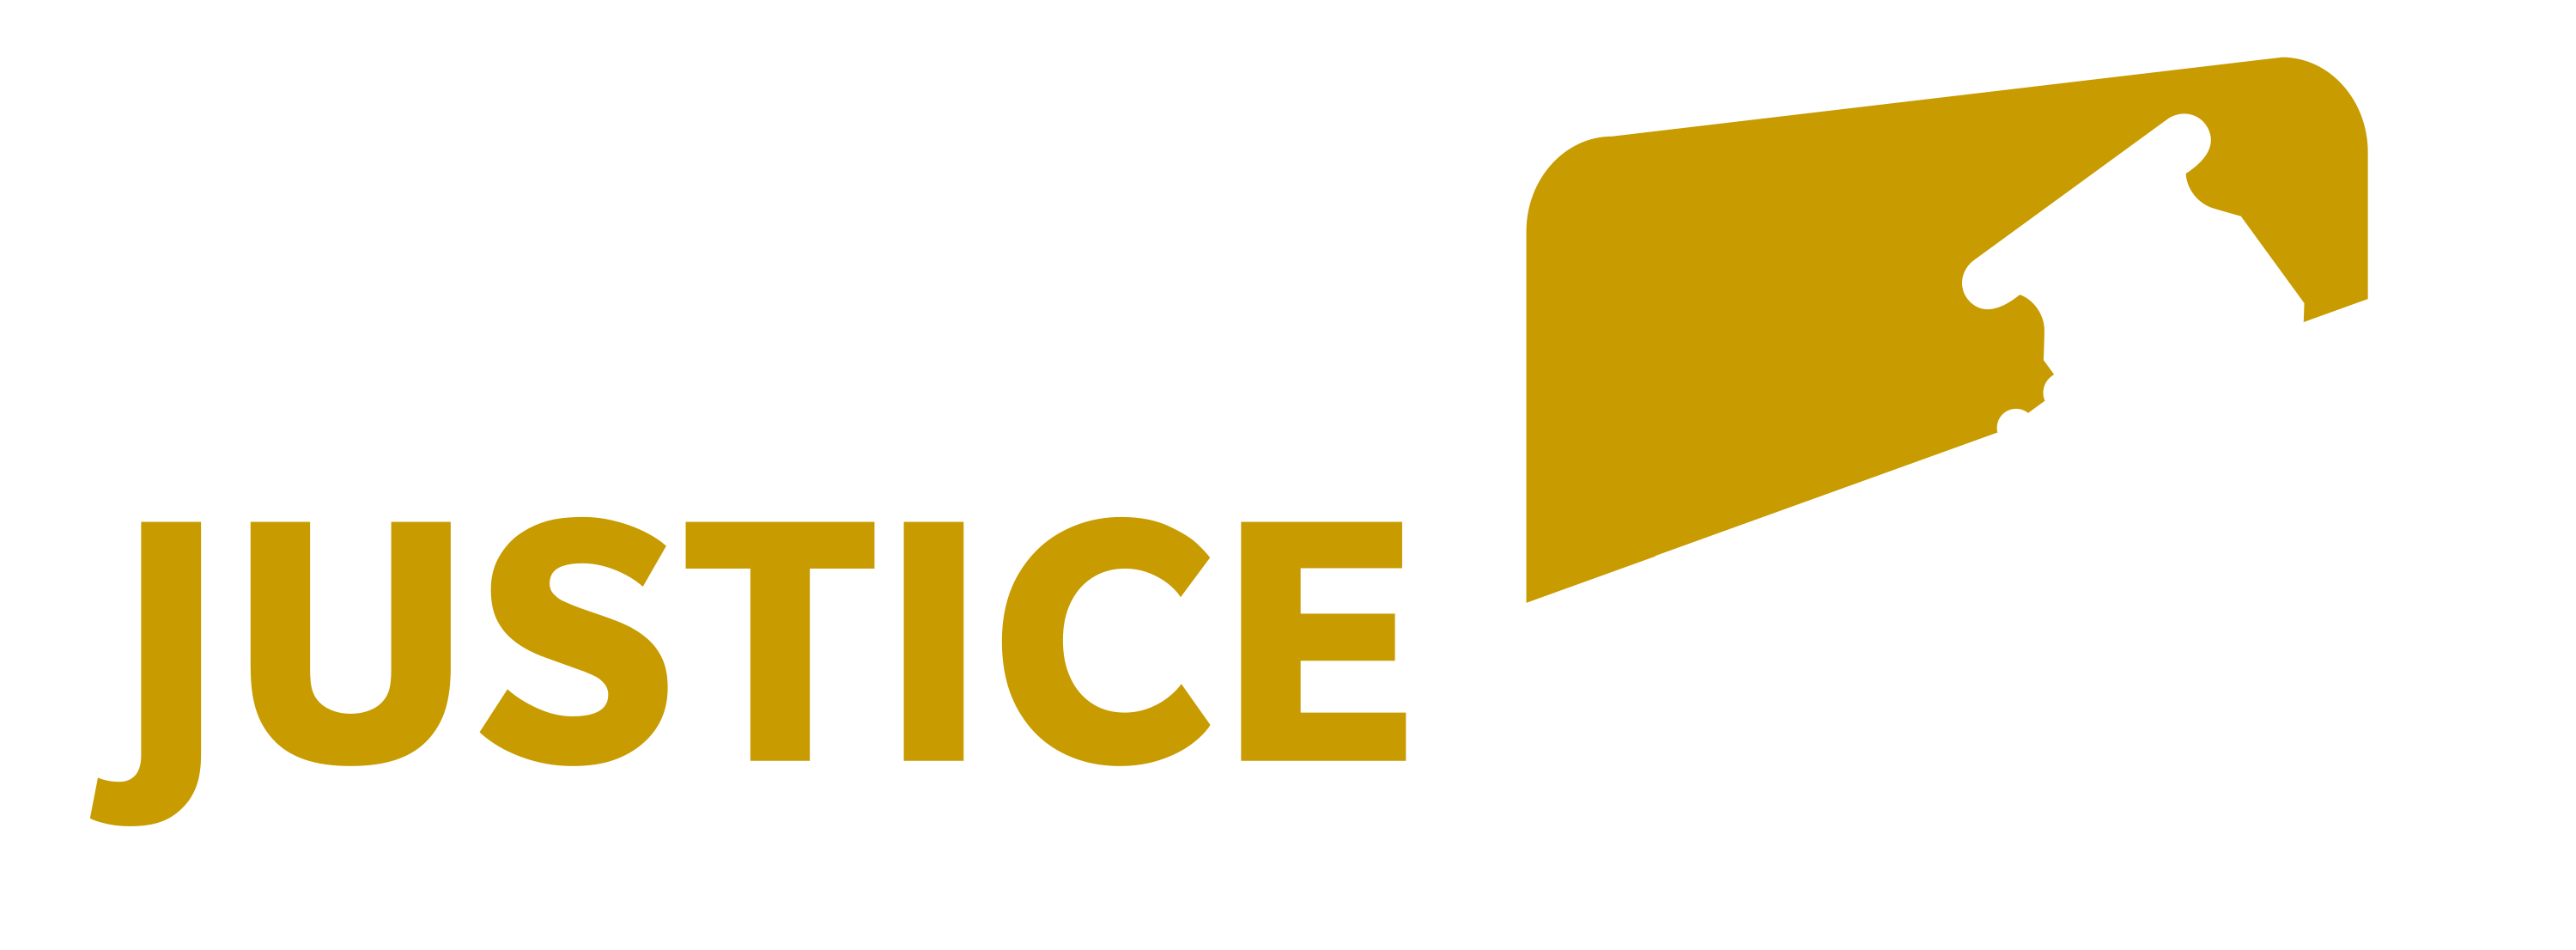 How to Justice